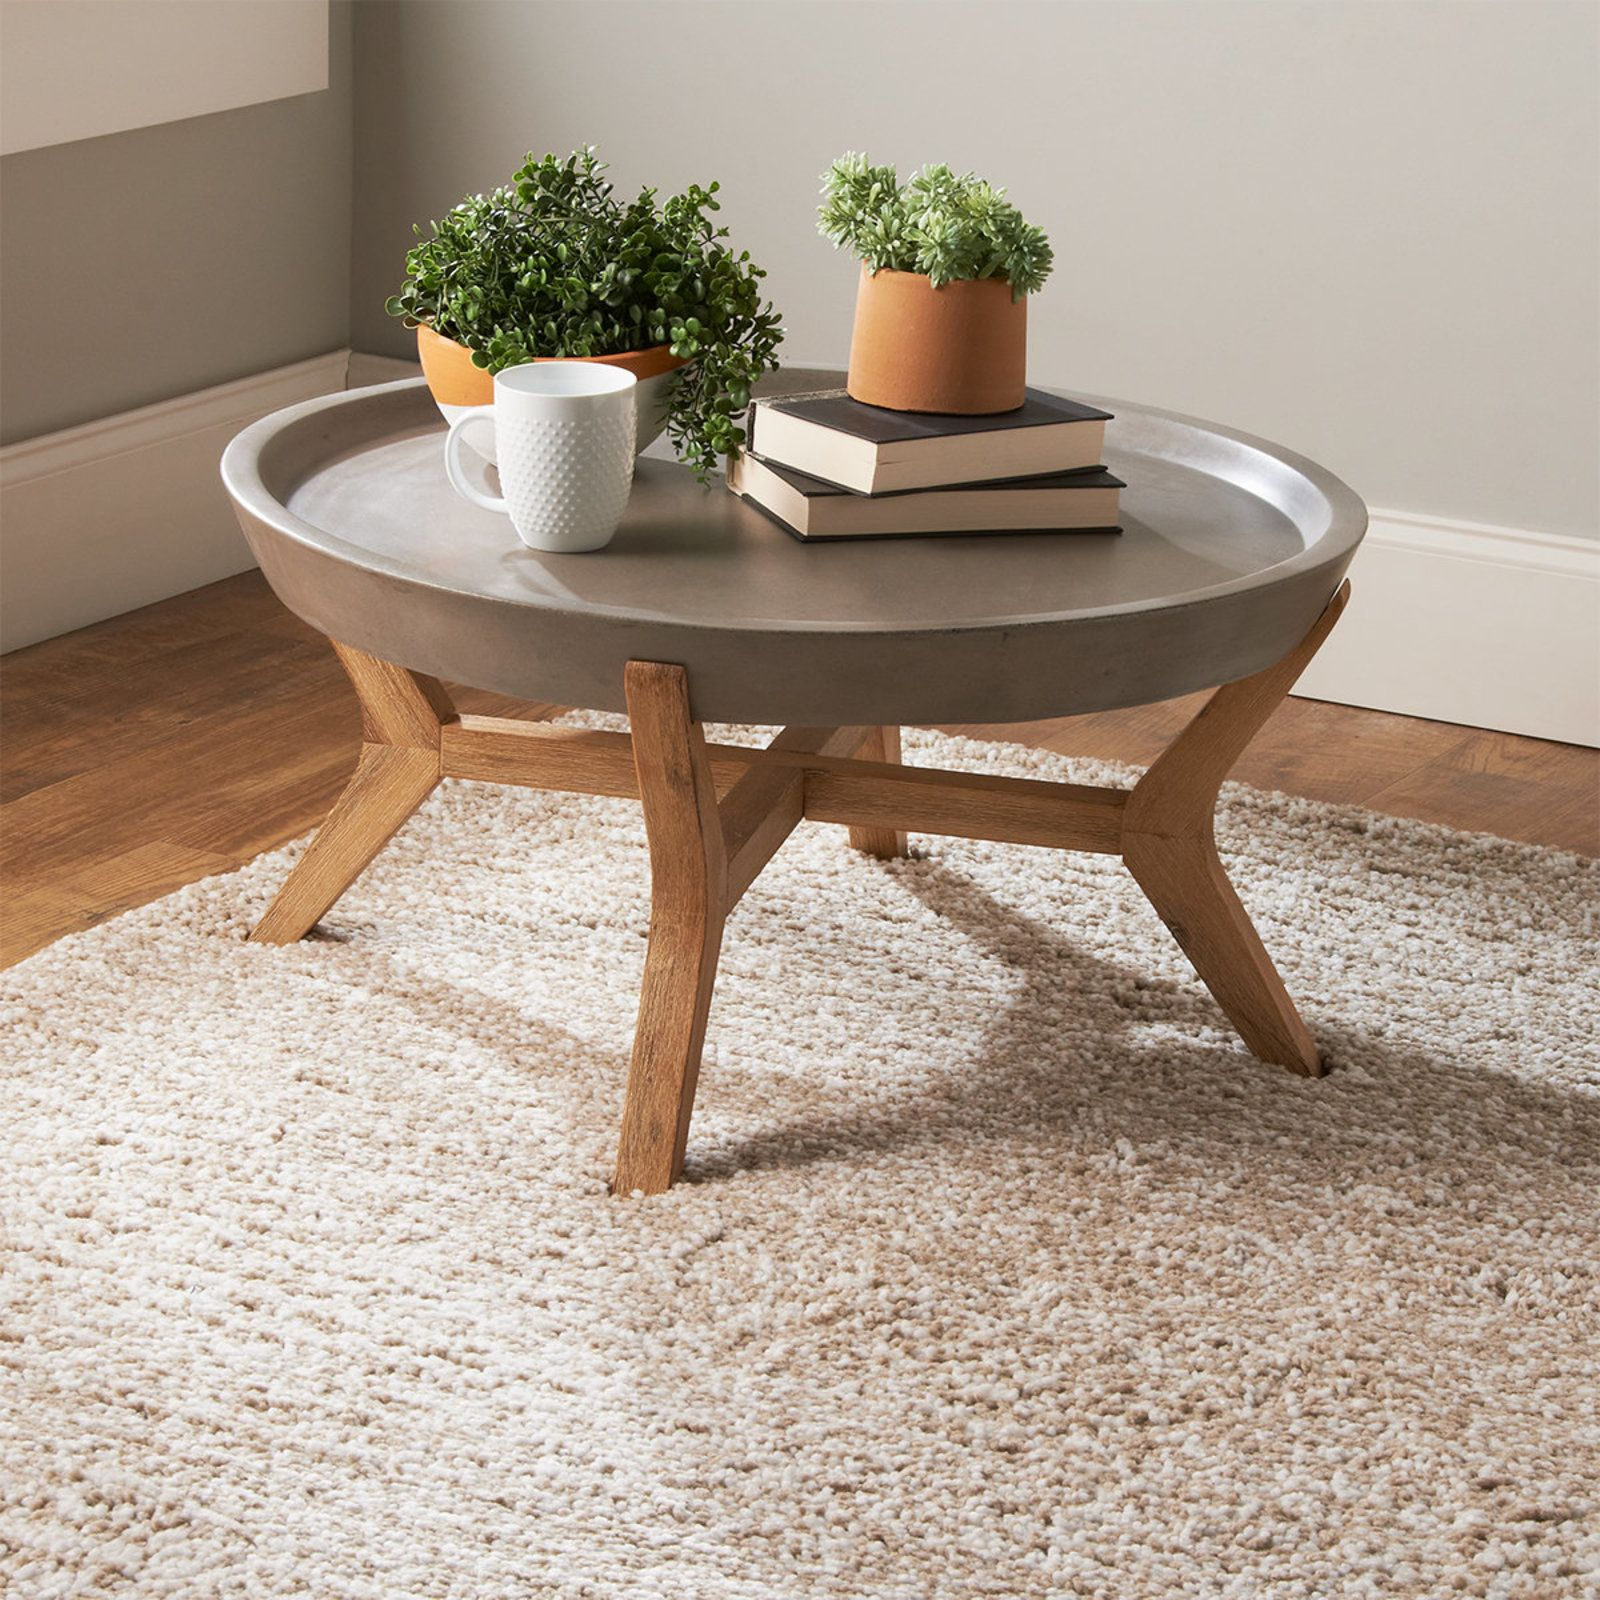 Round Concrete Tray Coffee Table Round Wood Coffee Table Coffee Table Concrete Coffee Table